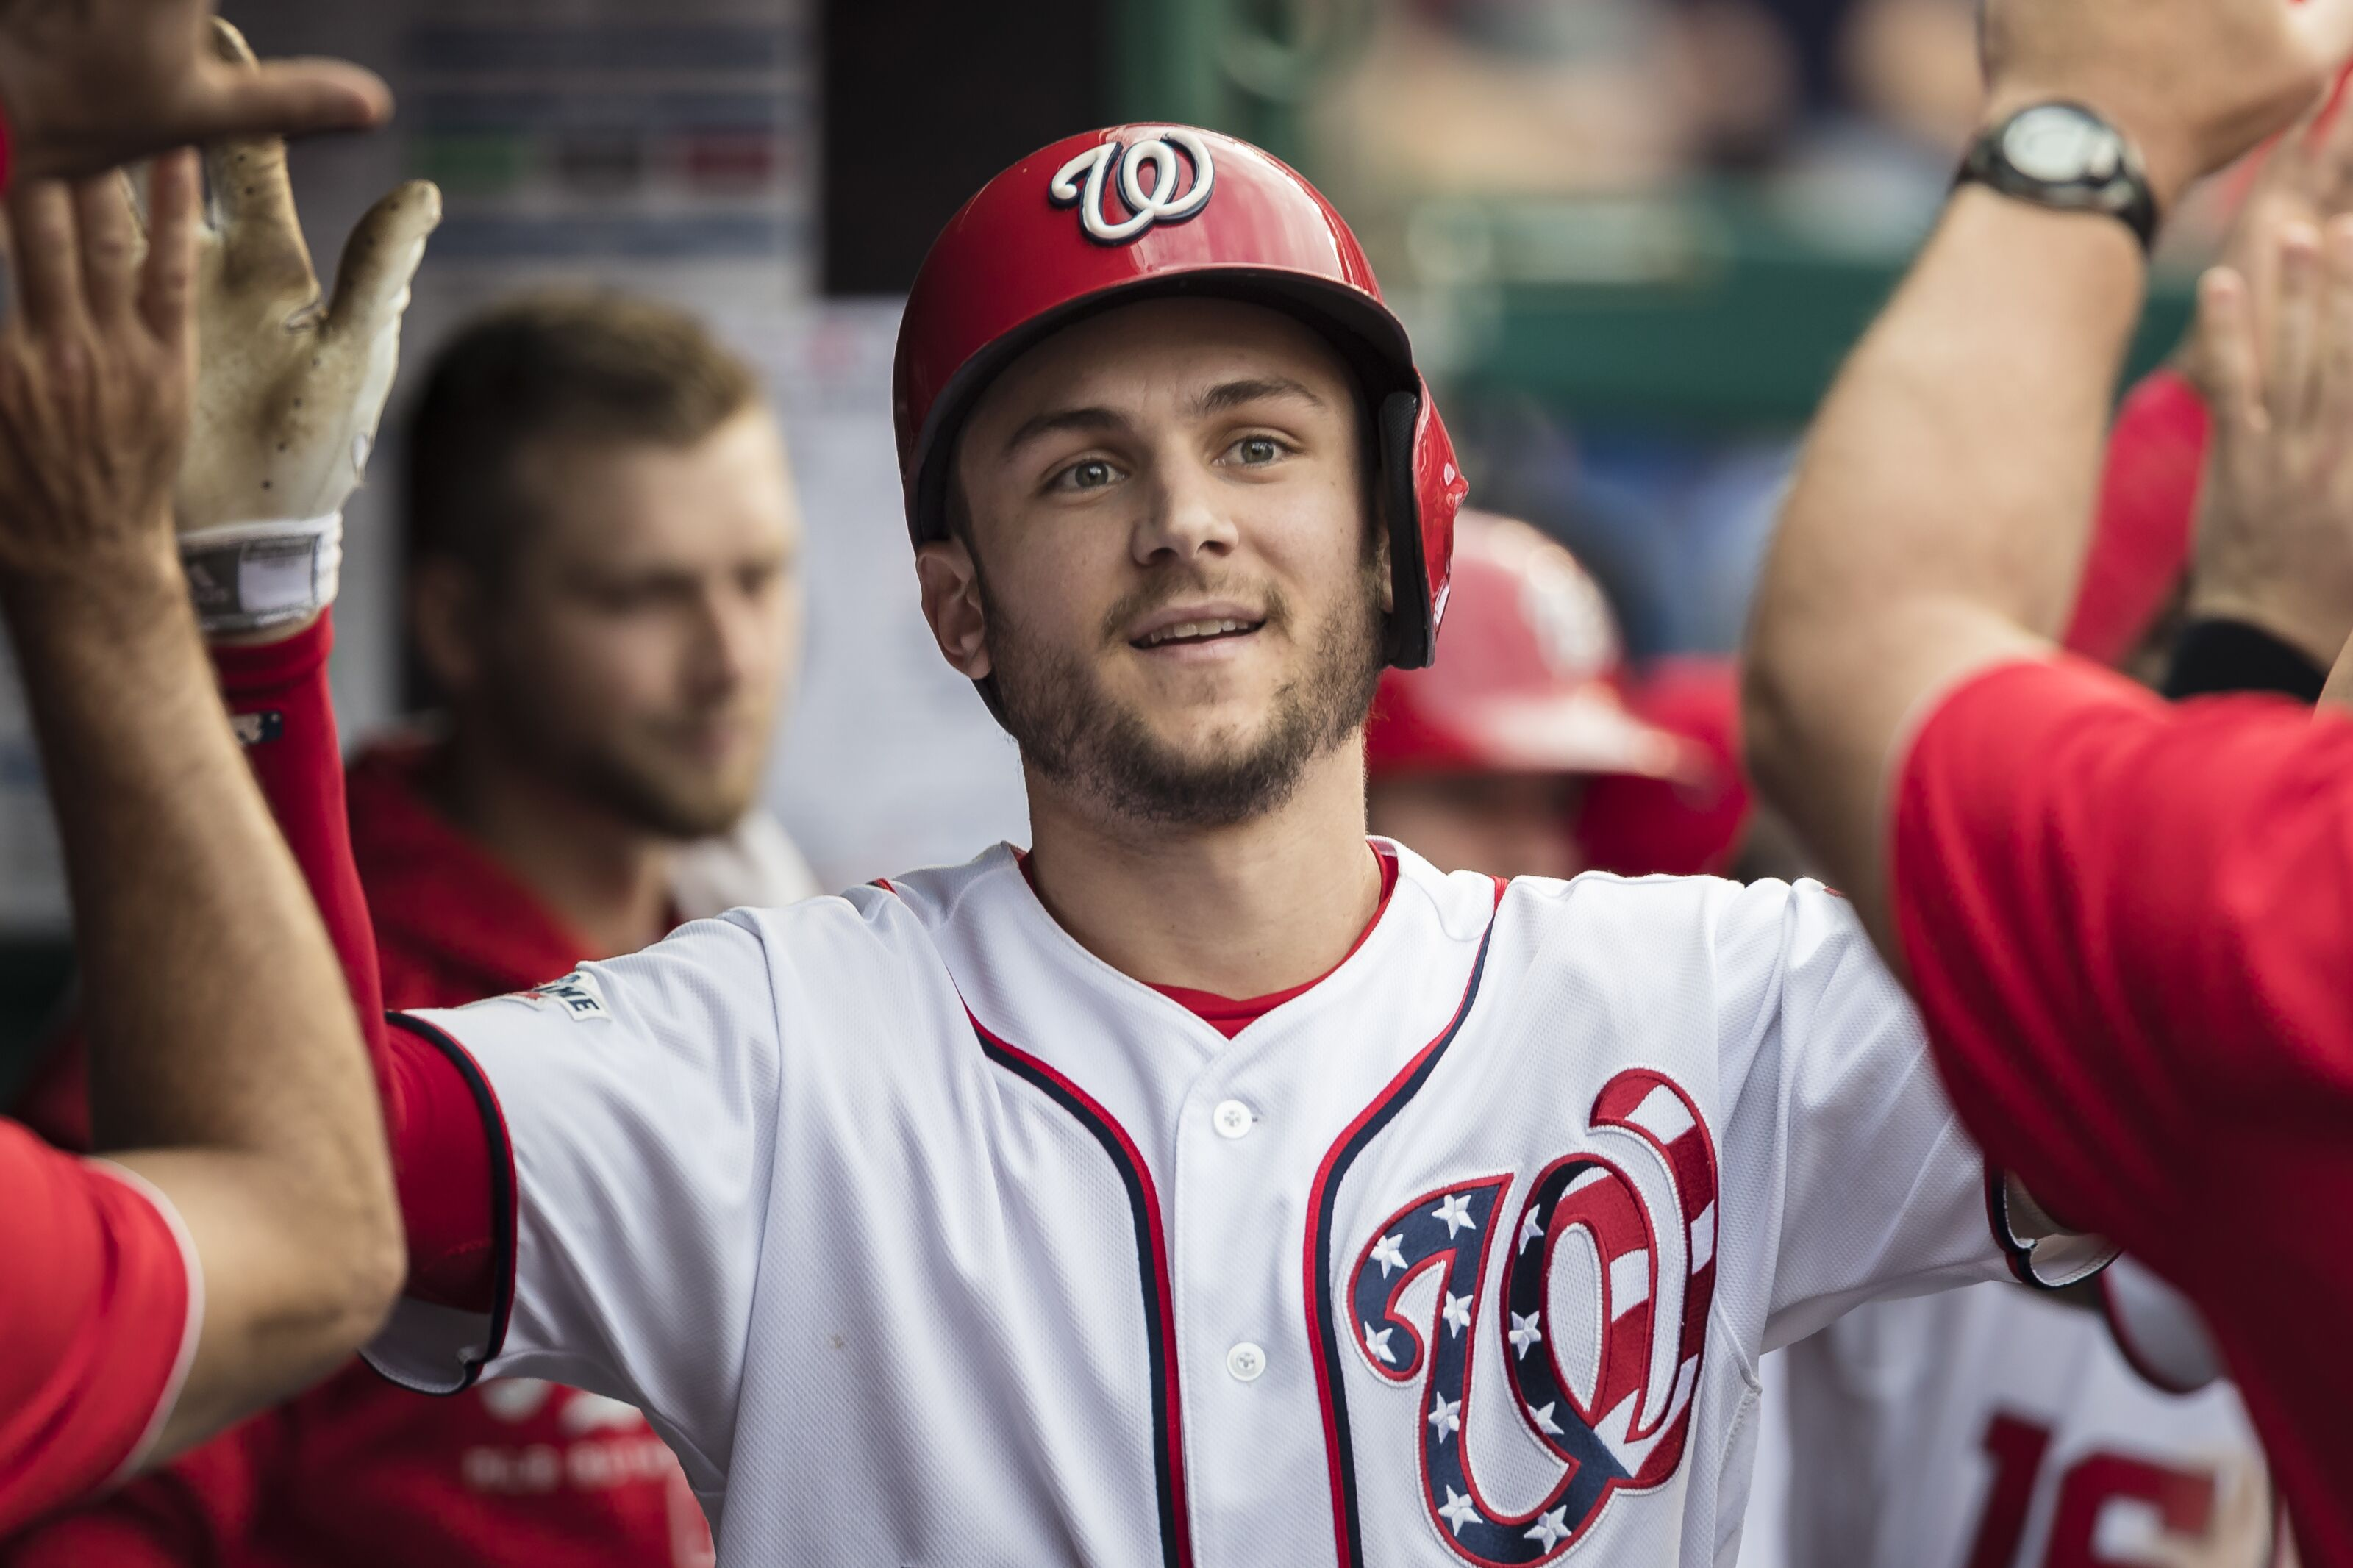 The Washington Nationals agree to arbitration deals with all six players.